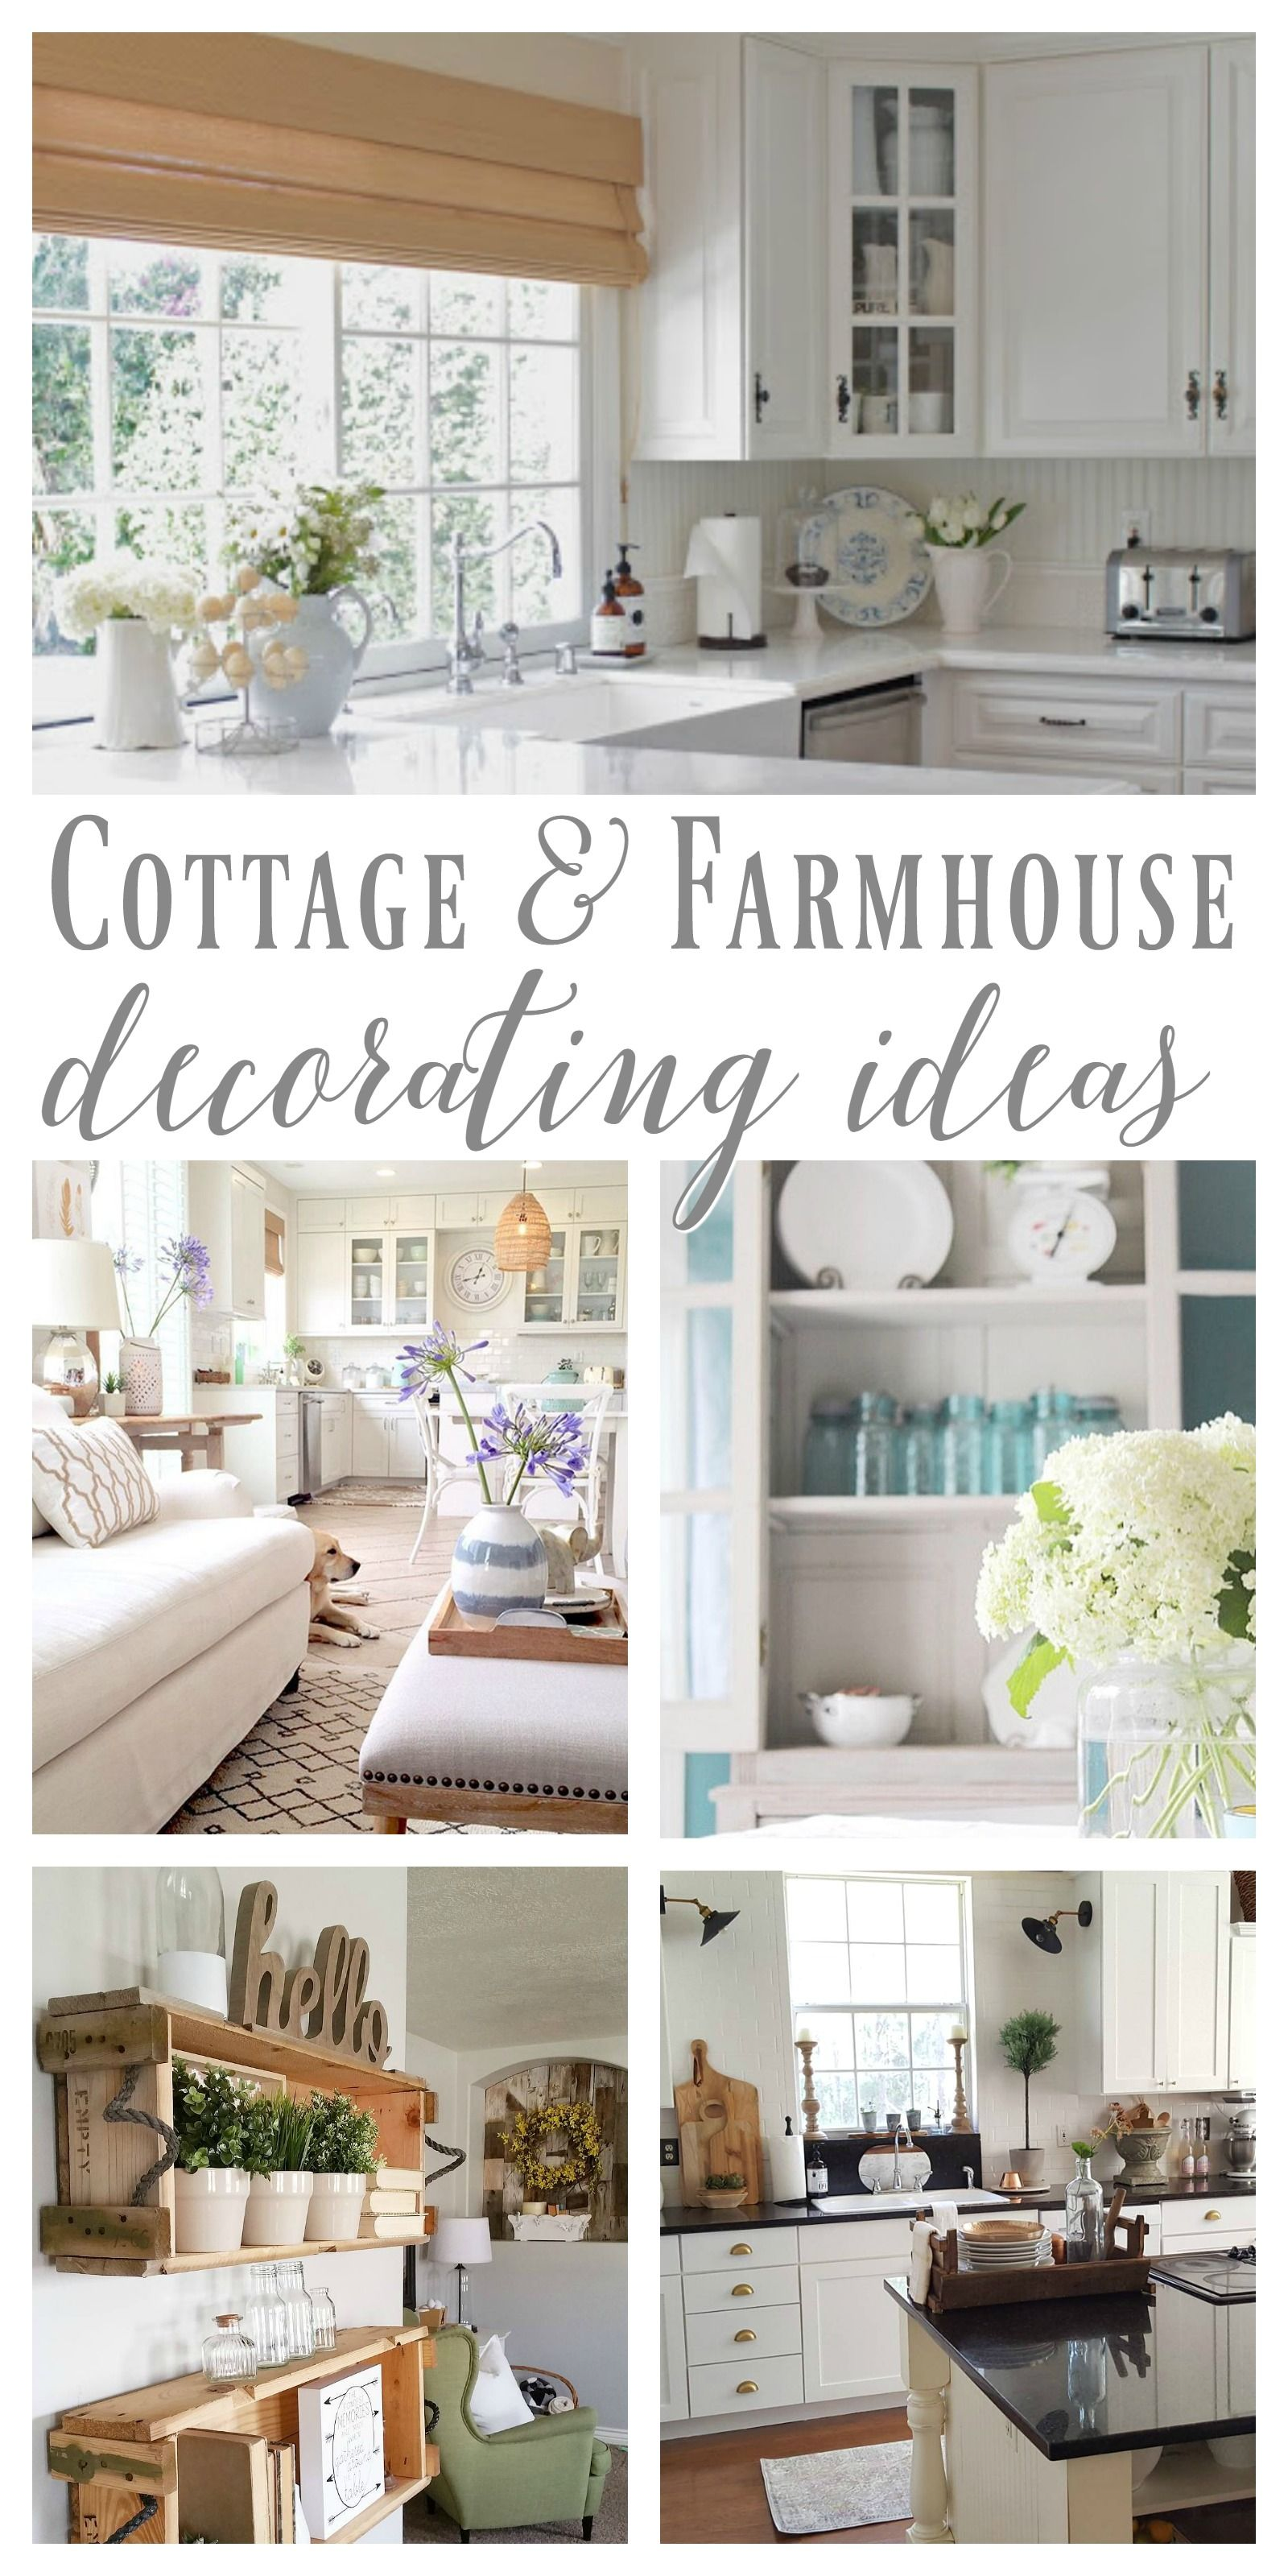 Cottage Farmhouse Features From #foxhollowfridayfavs ...